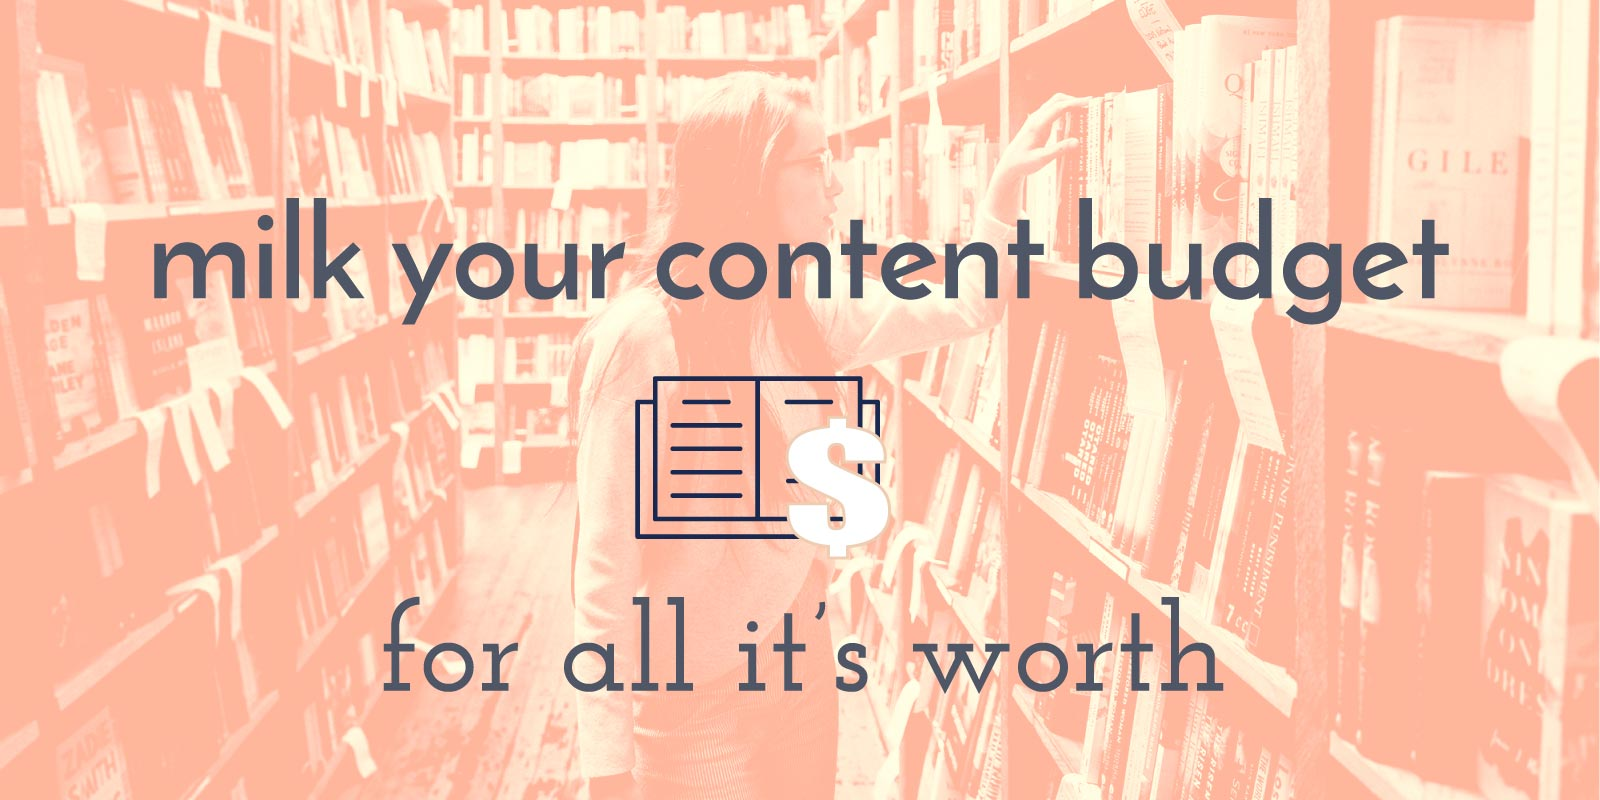 affordable-content-marketing-strategy-for-nonprofits